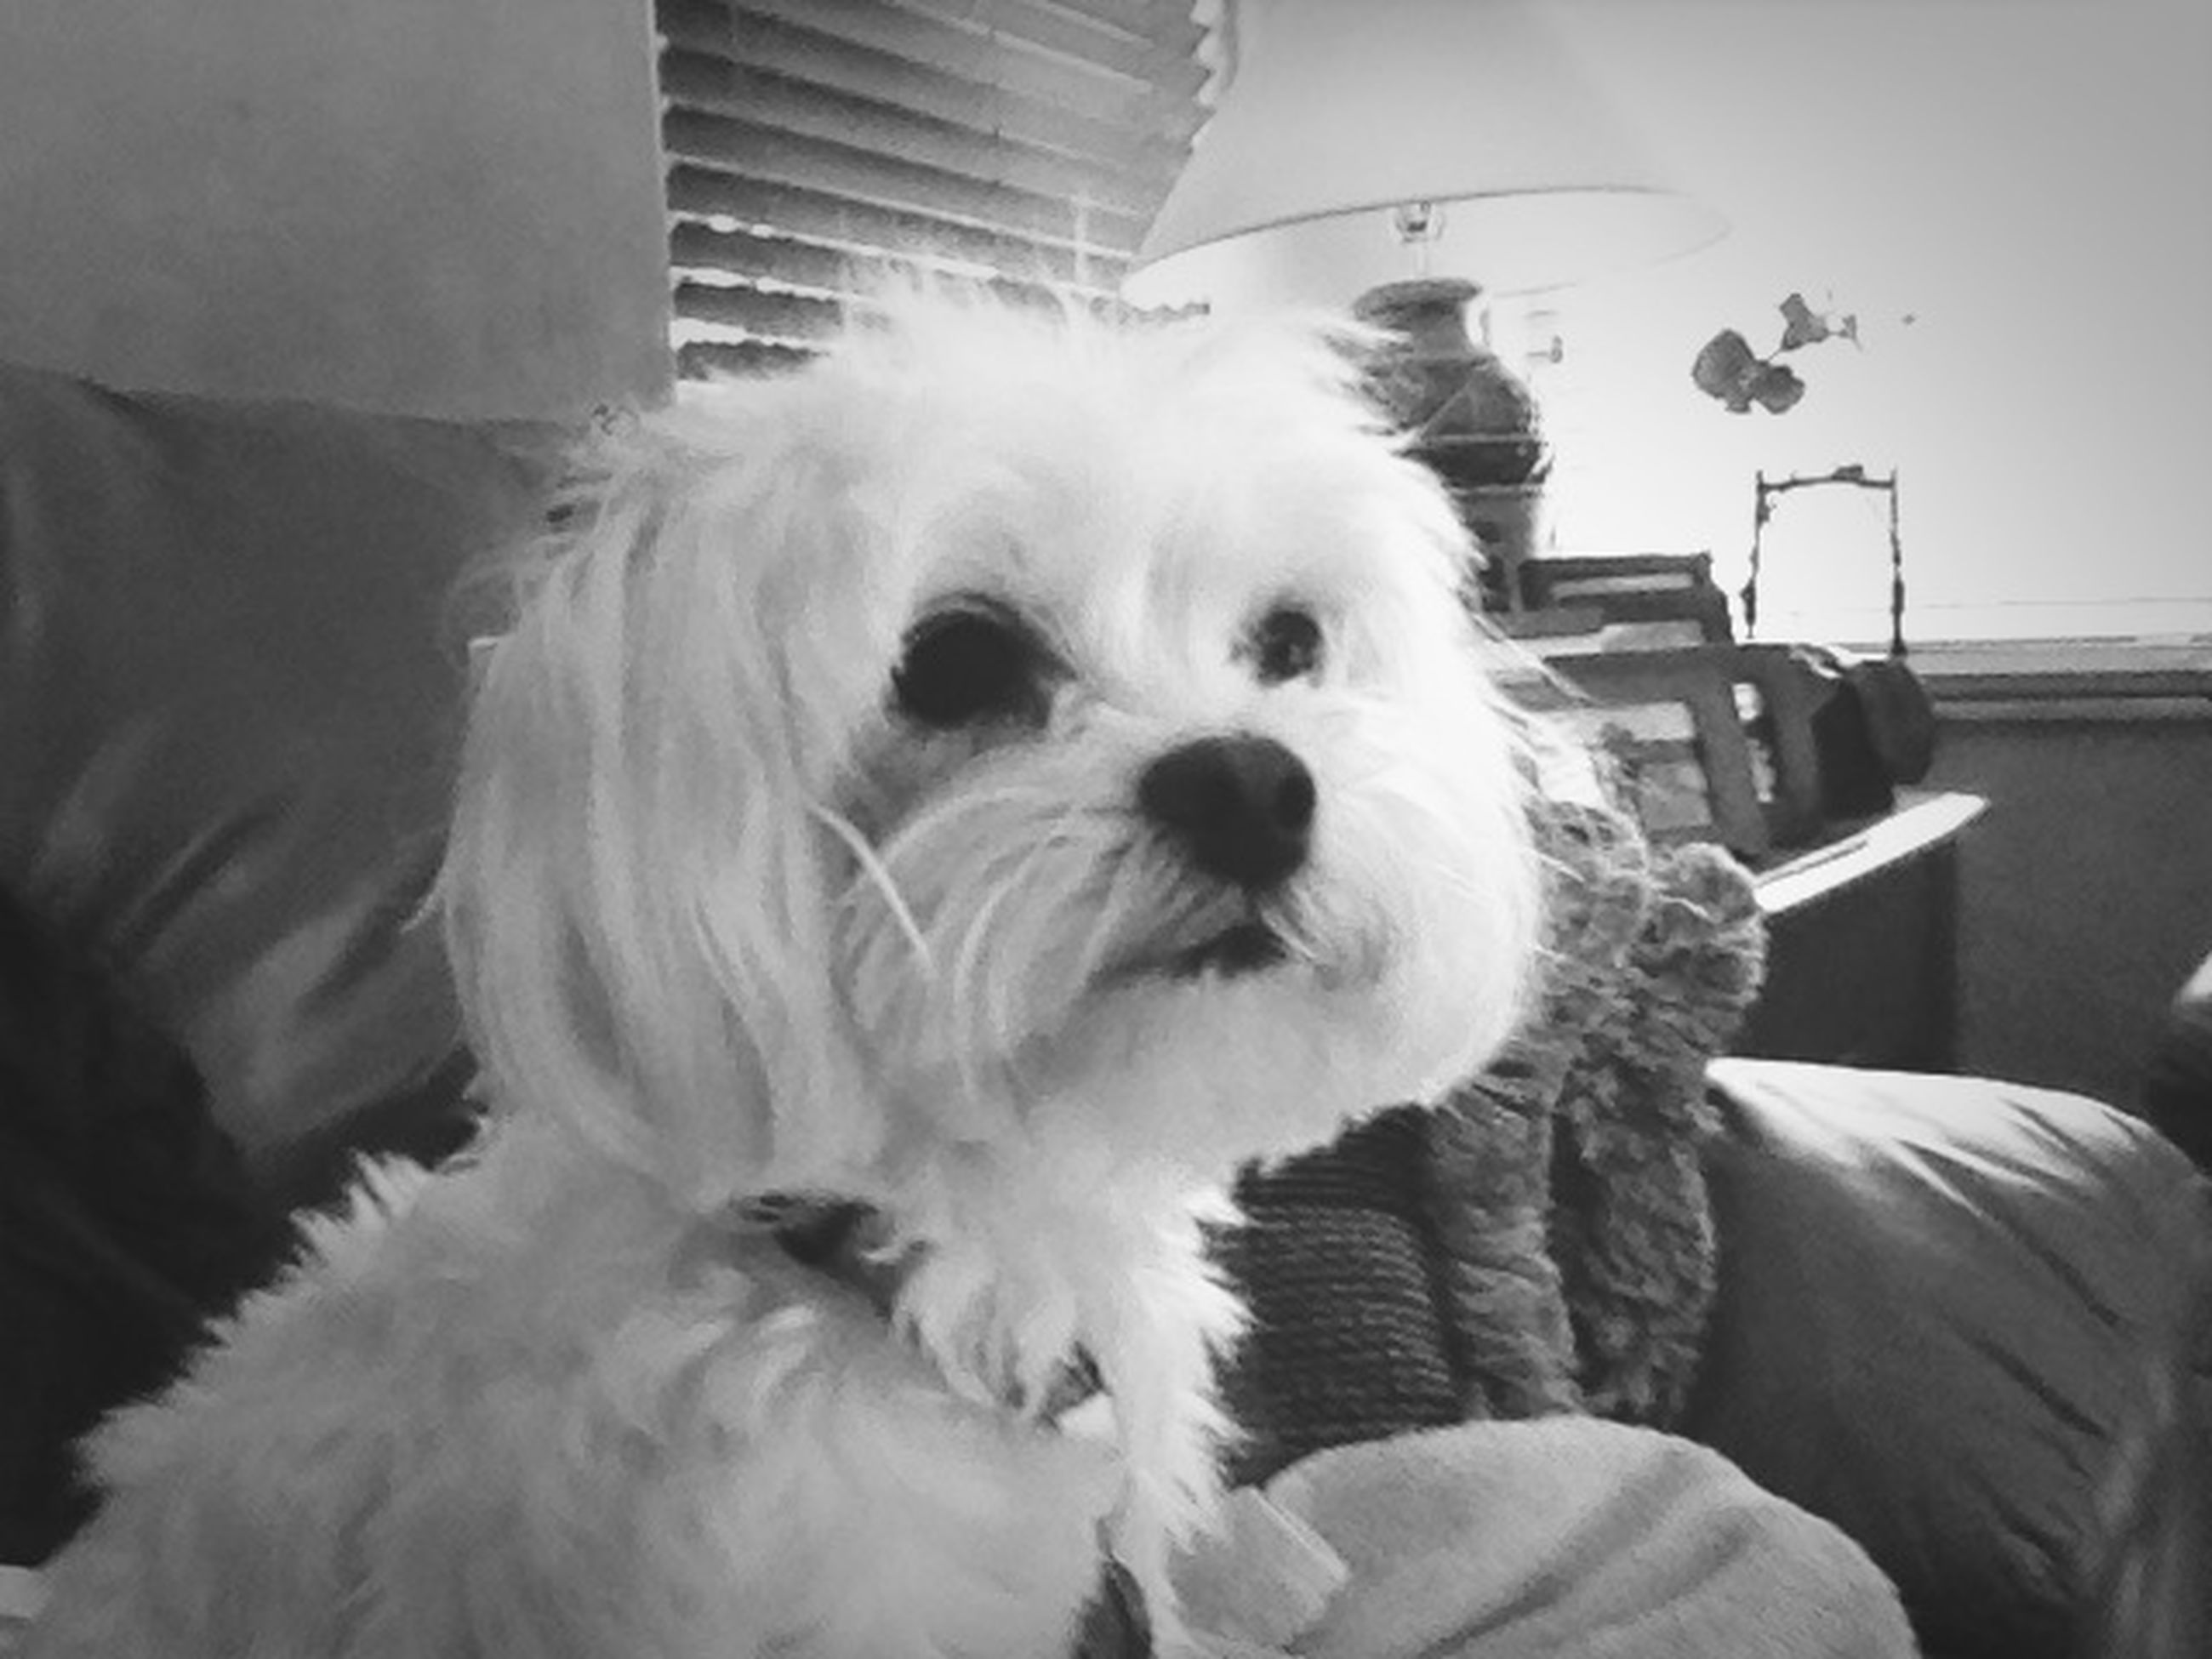 domestic animals, pets, dog, animal themes, one animal, mammal, indoors, home interior, animal hair, portrait, close-up, loyalty, animal head, looking at camera, relaxation, pampered pets, white color, sitting, front view